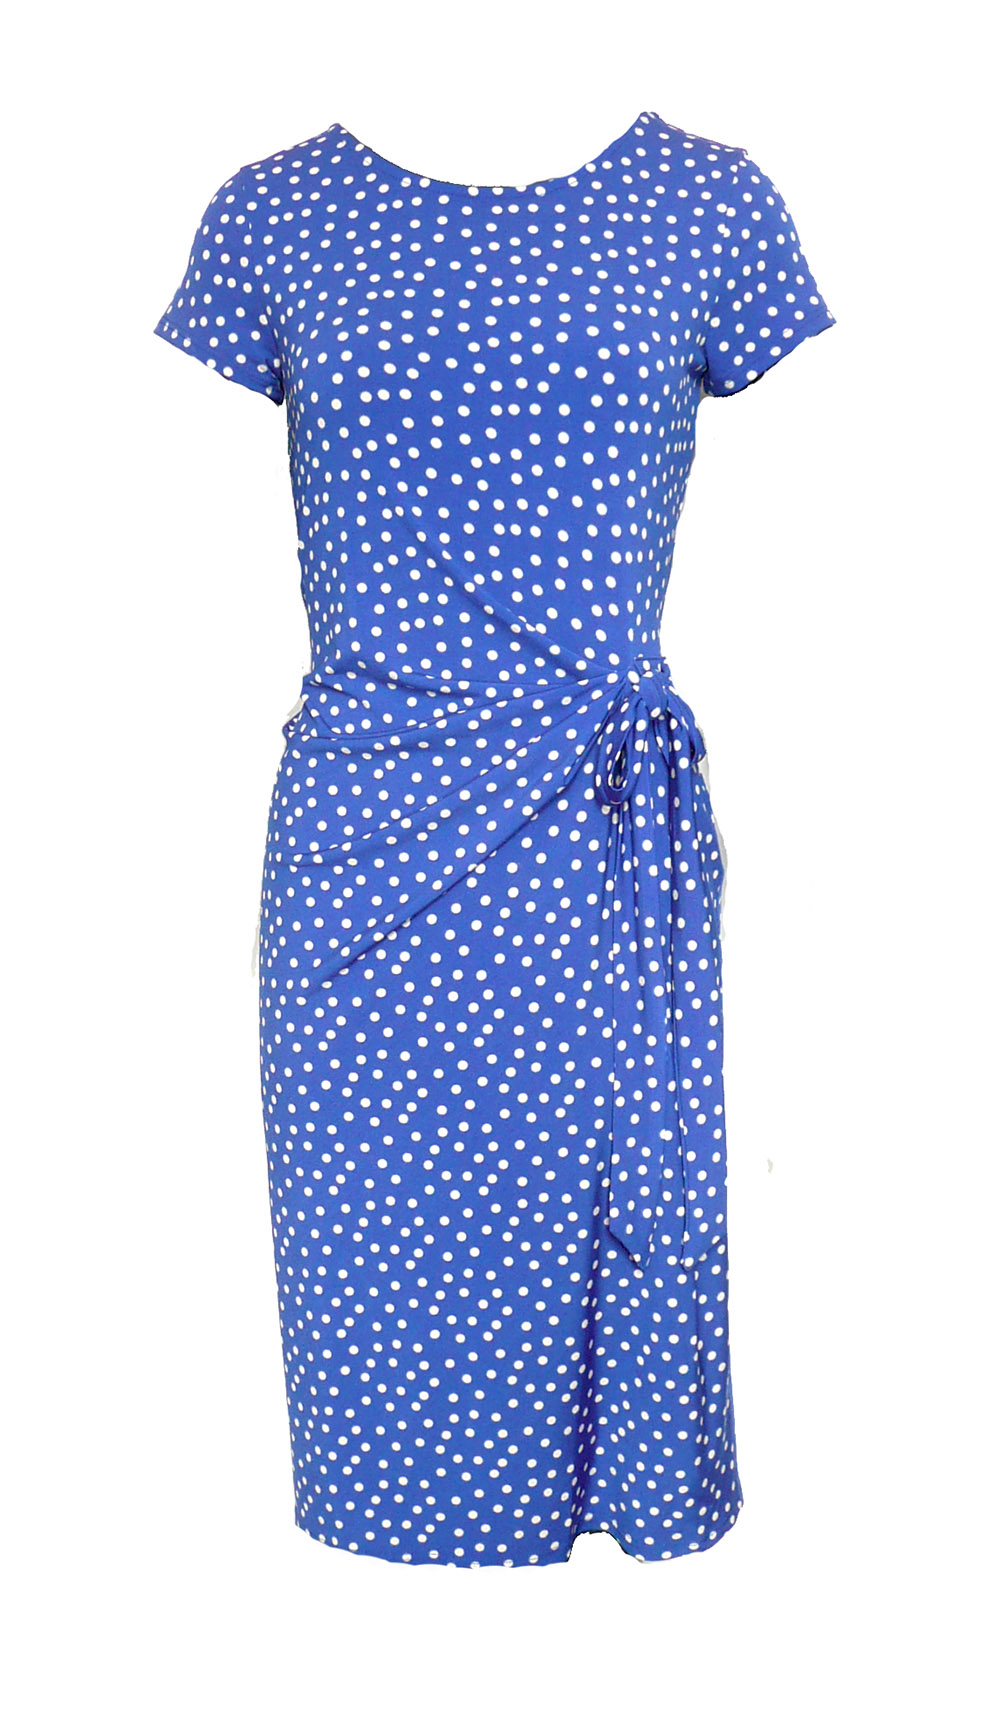 dress cap sl blu dot.jpg